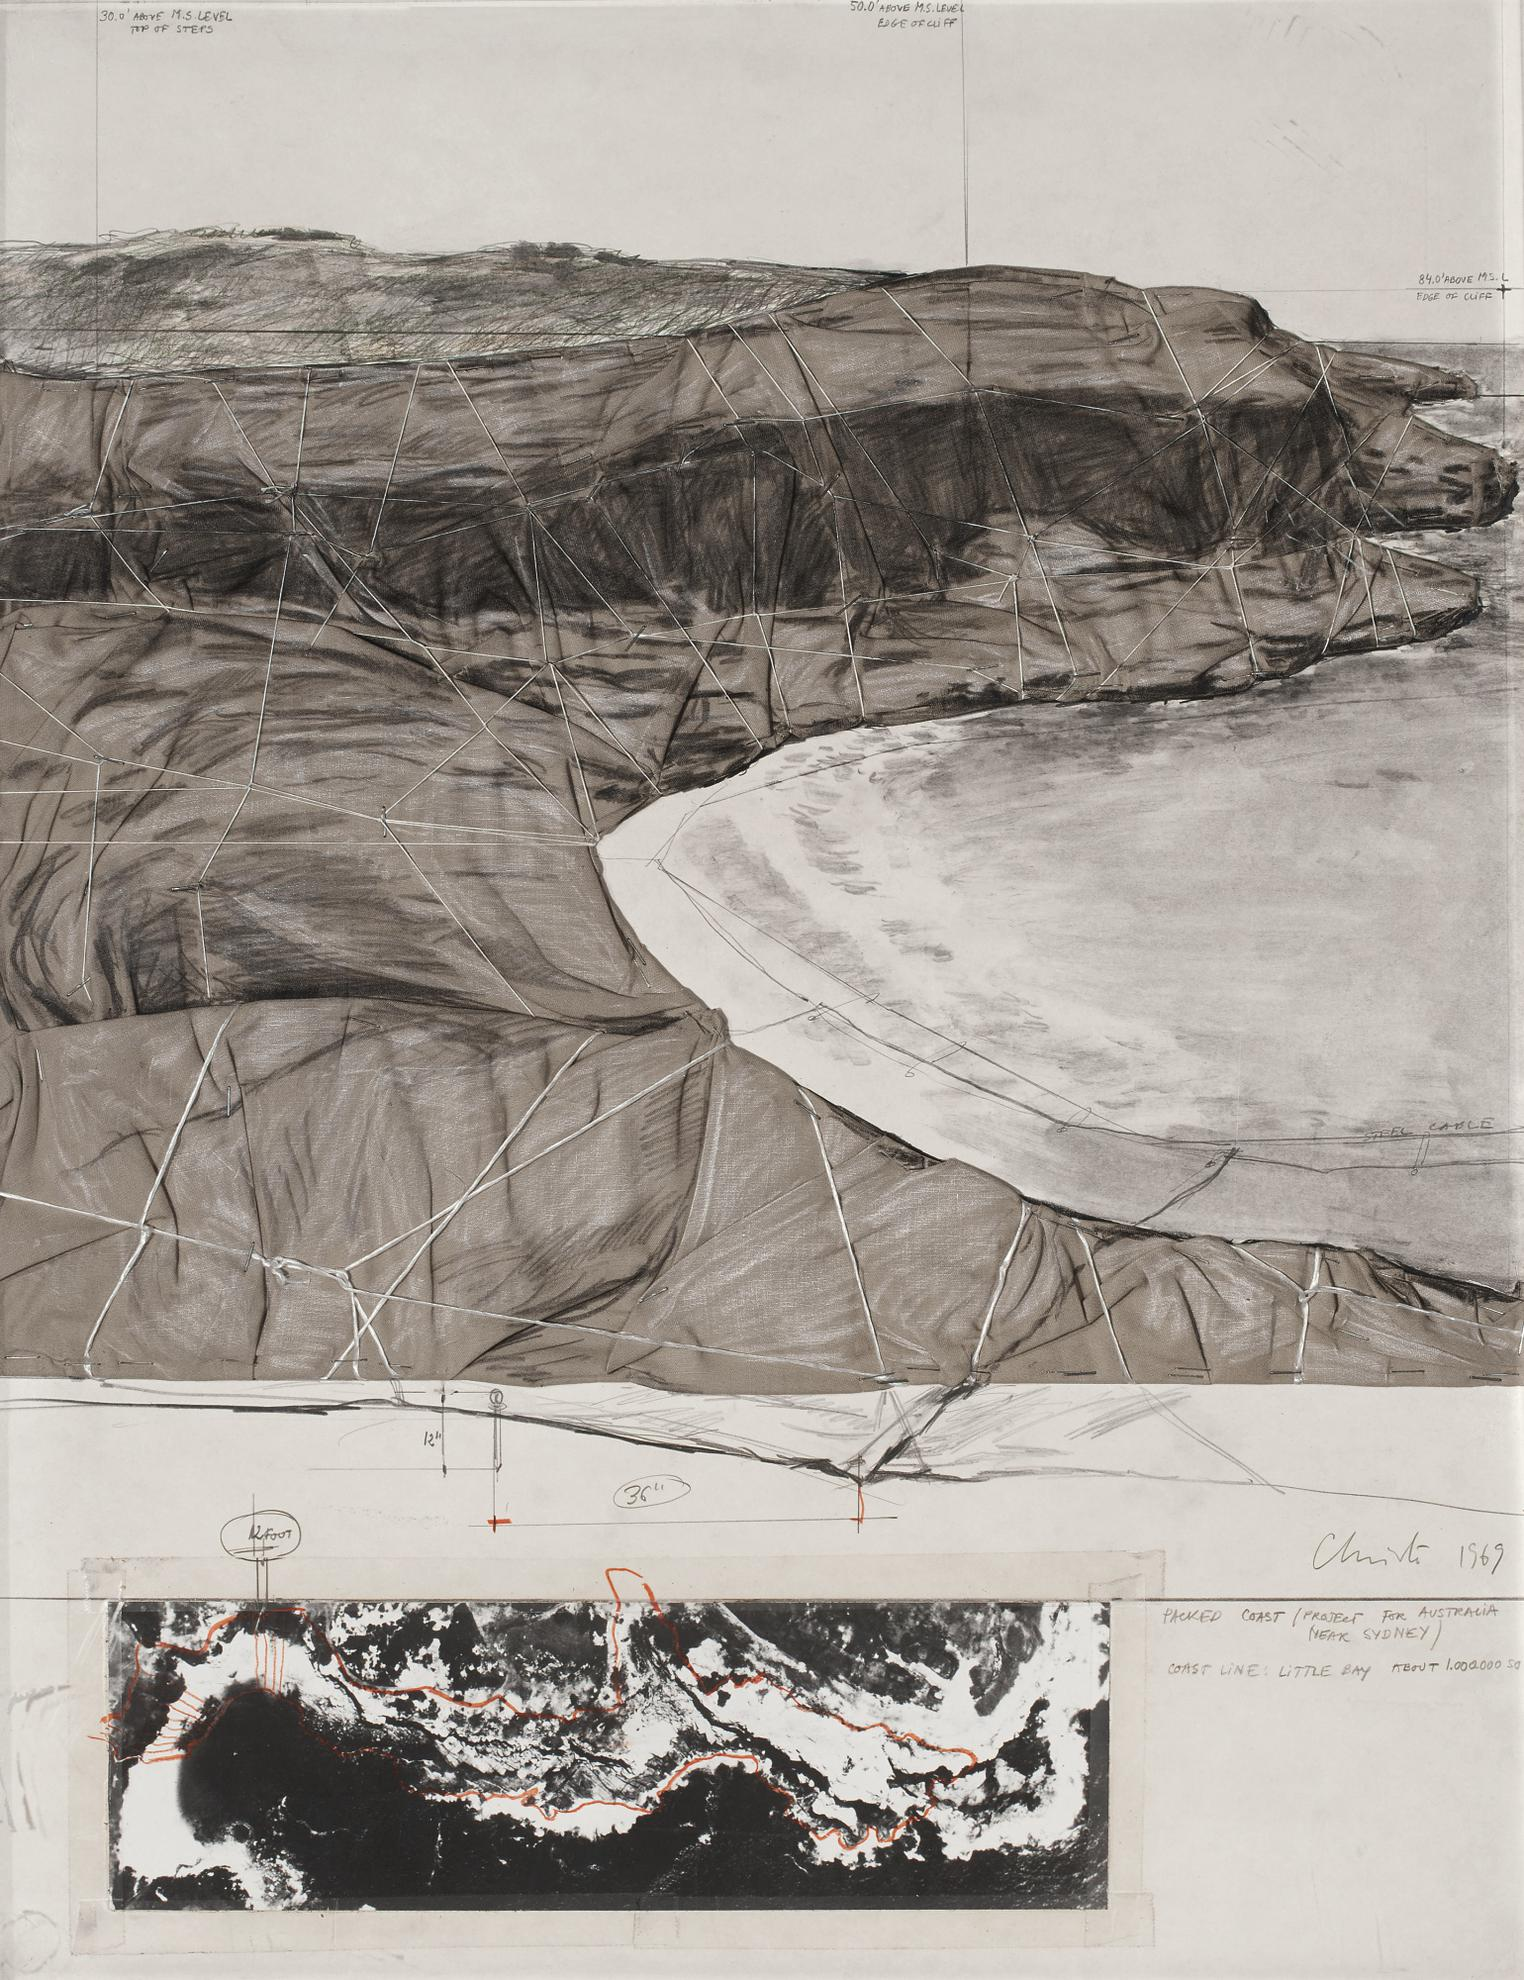 Christo and Jeanne-Claude-Packed Coast (Project For Australia Near Sydney)-1969